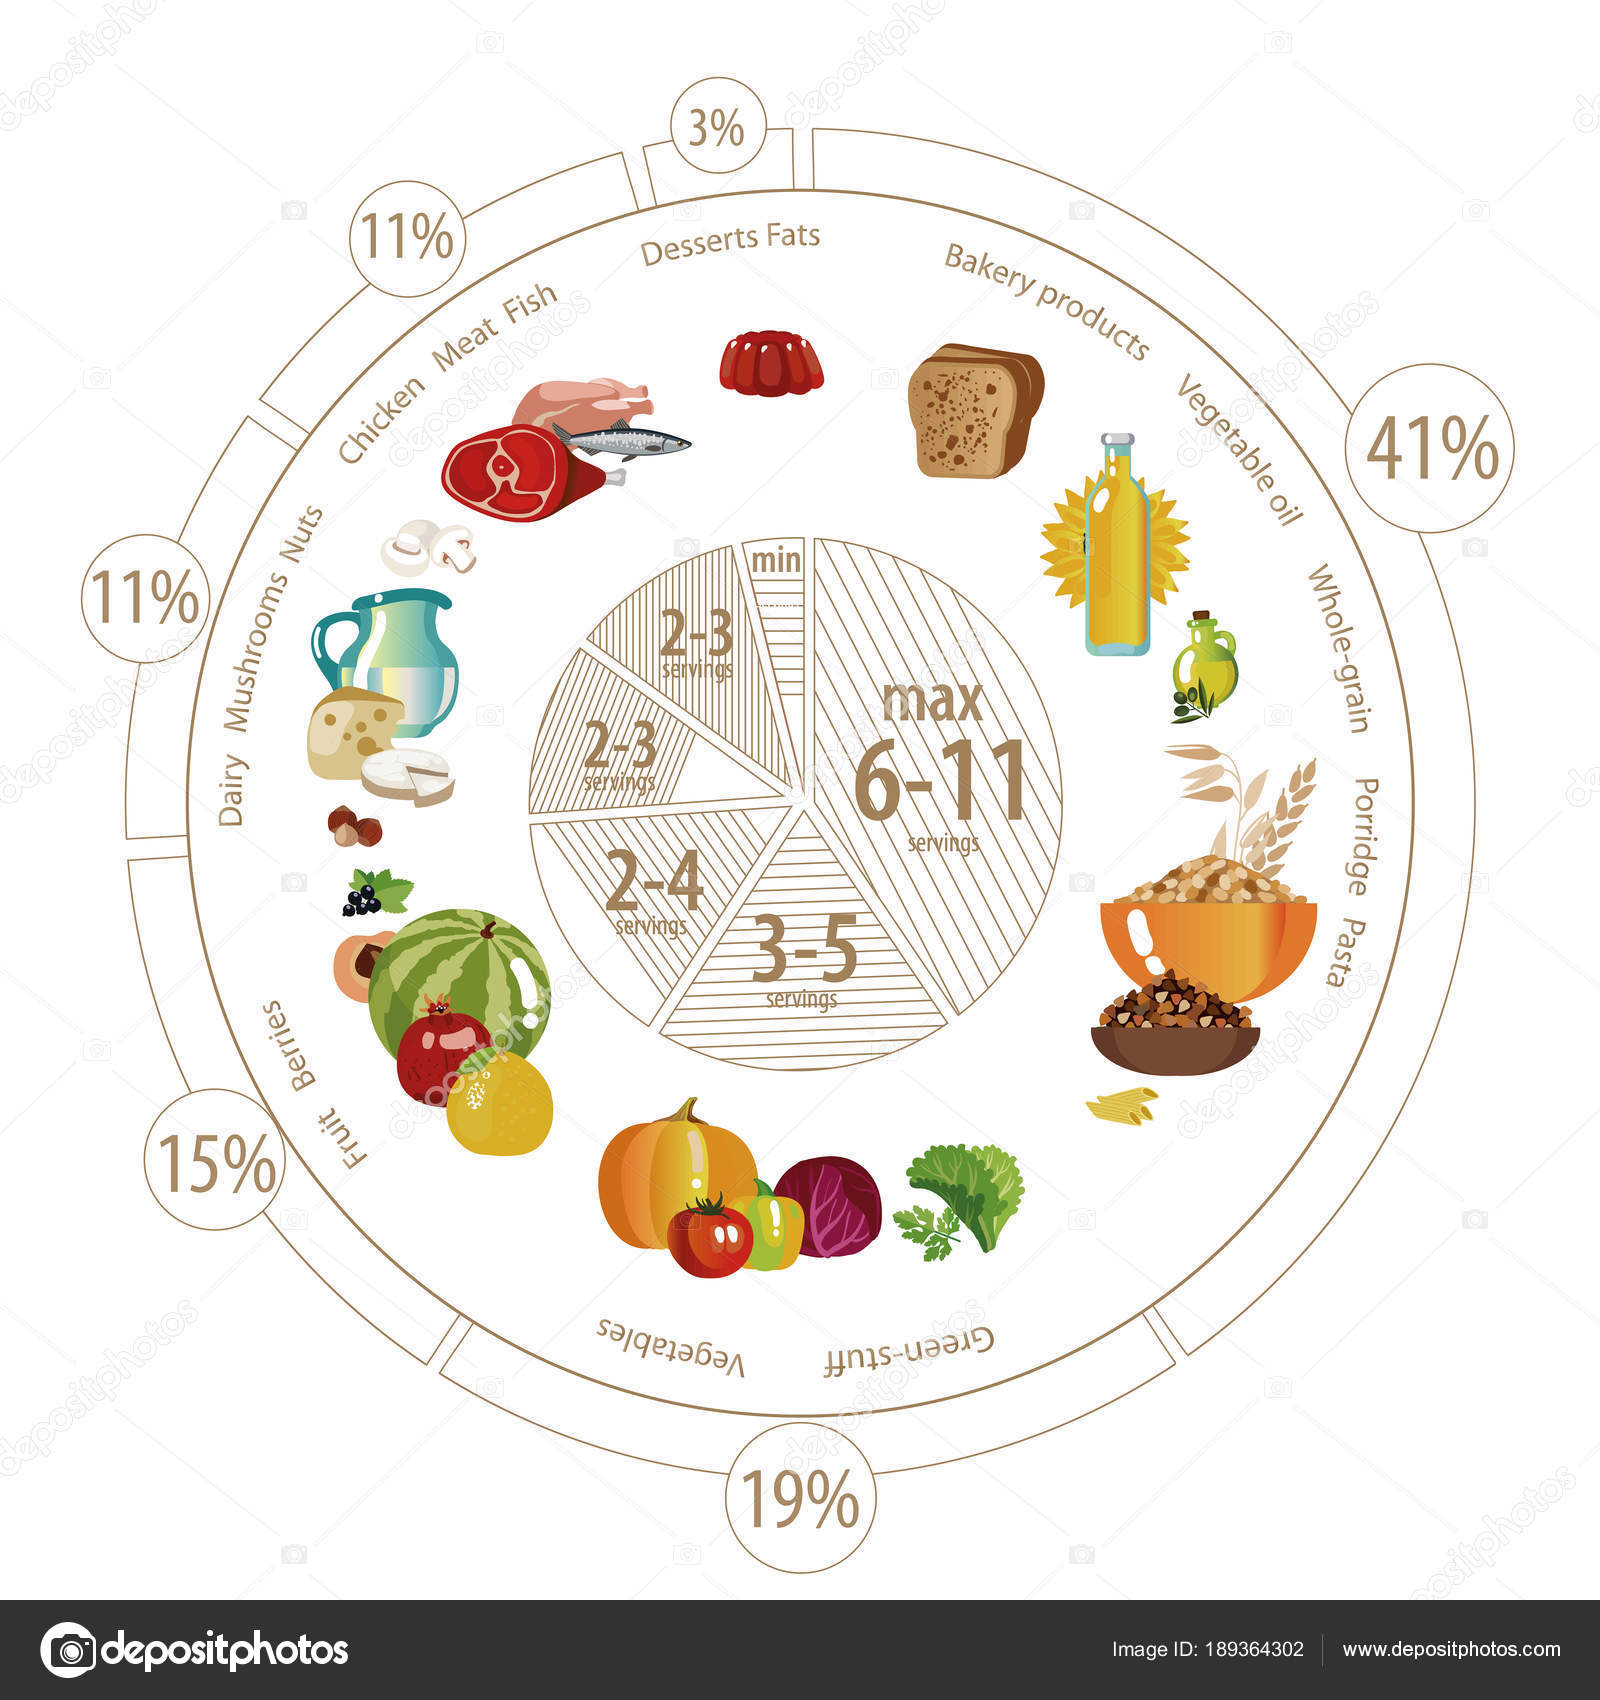 Food pyramid of pie chart stock vector alfaolga 189364302 food pyramid in the form of a pie chart recommendation for a healthy diet norms of products for the daily diet vector by alfaolga nvjuhfo Choice Image